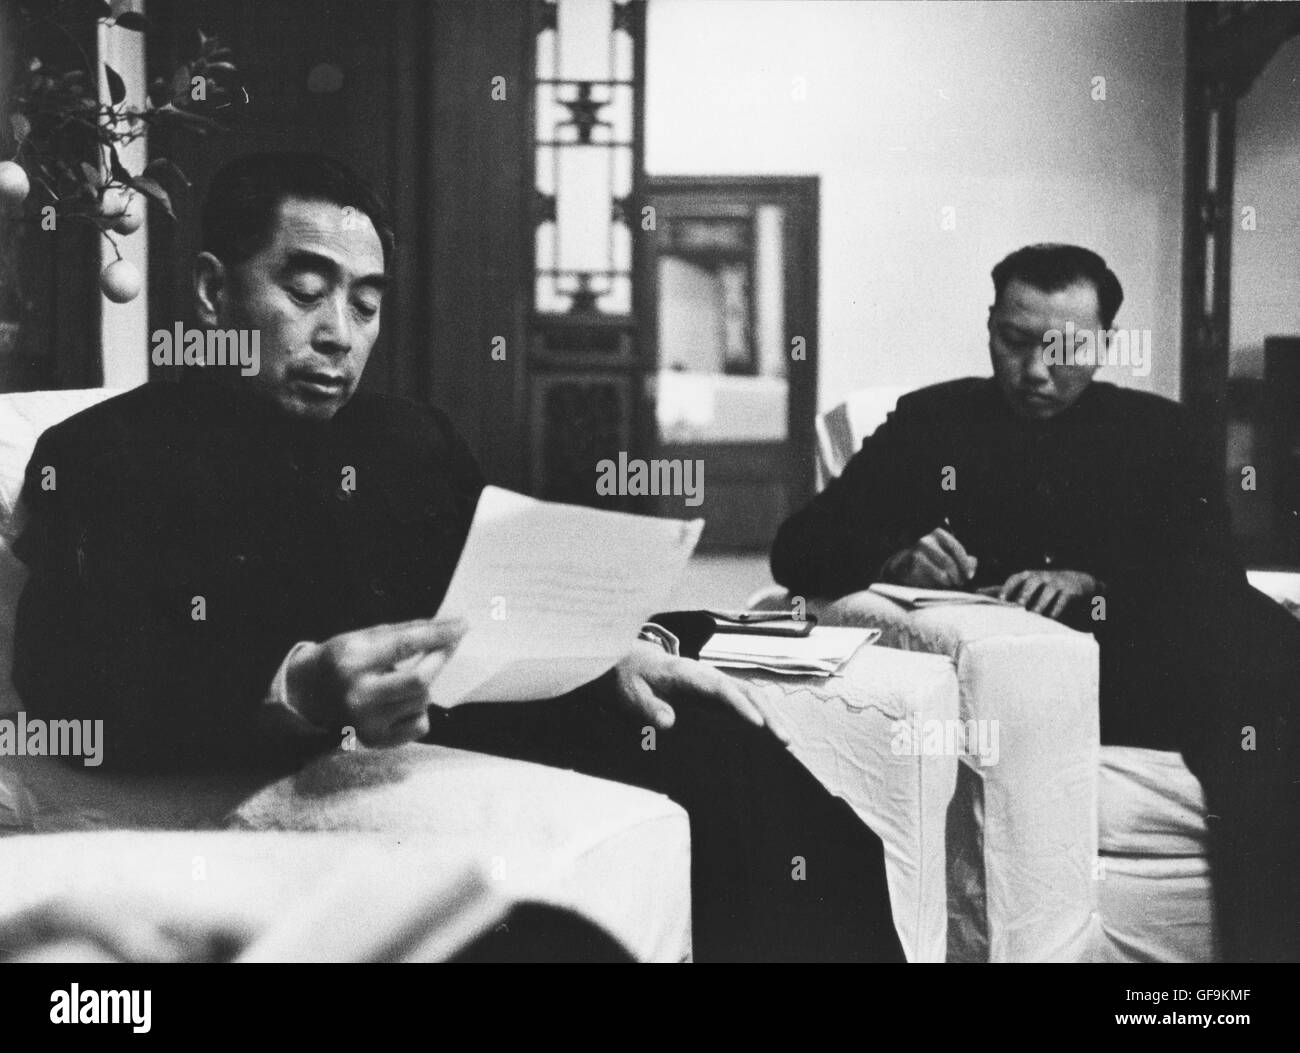 Chou En-Lai, the Premiere of the People's Republic of China, reviewing correspondence at home, 1957. - Stock Image